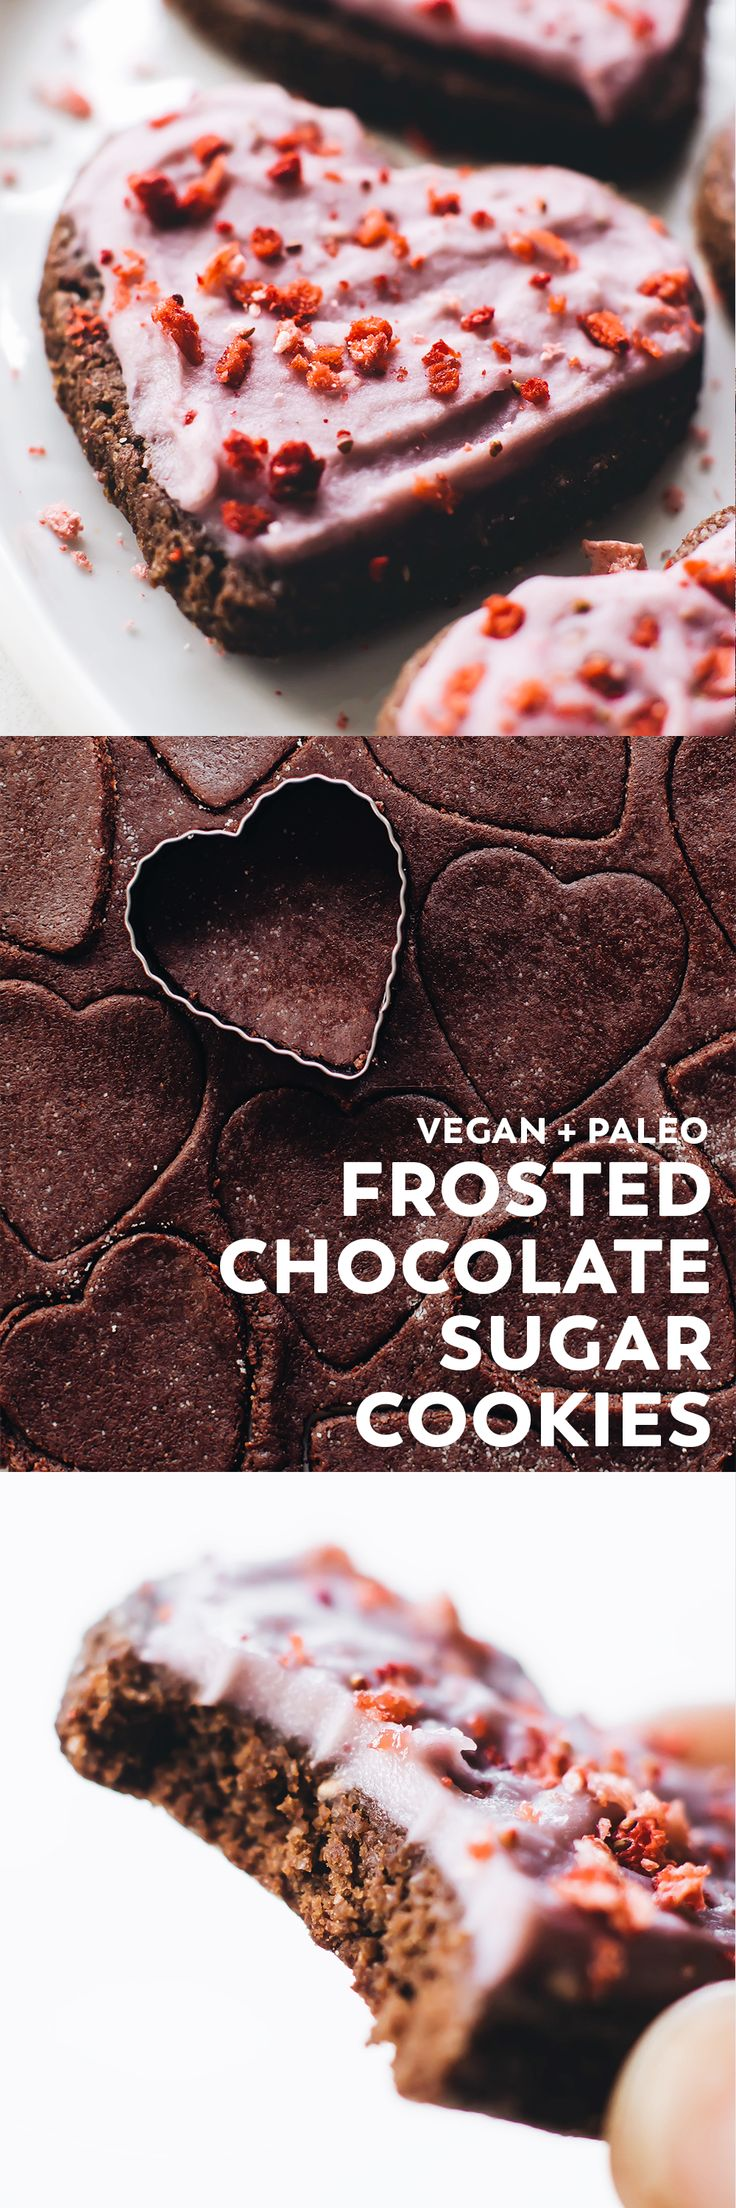 Vegan frosted chocolate sugar cookies